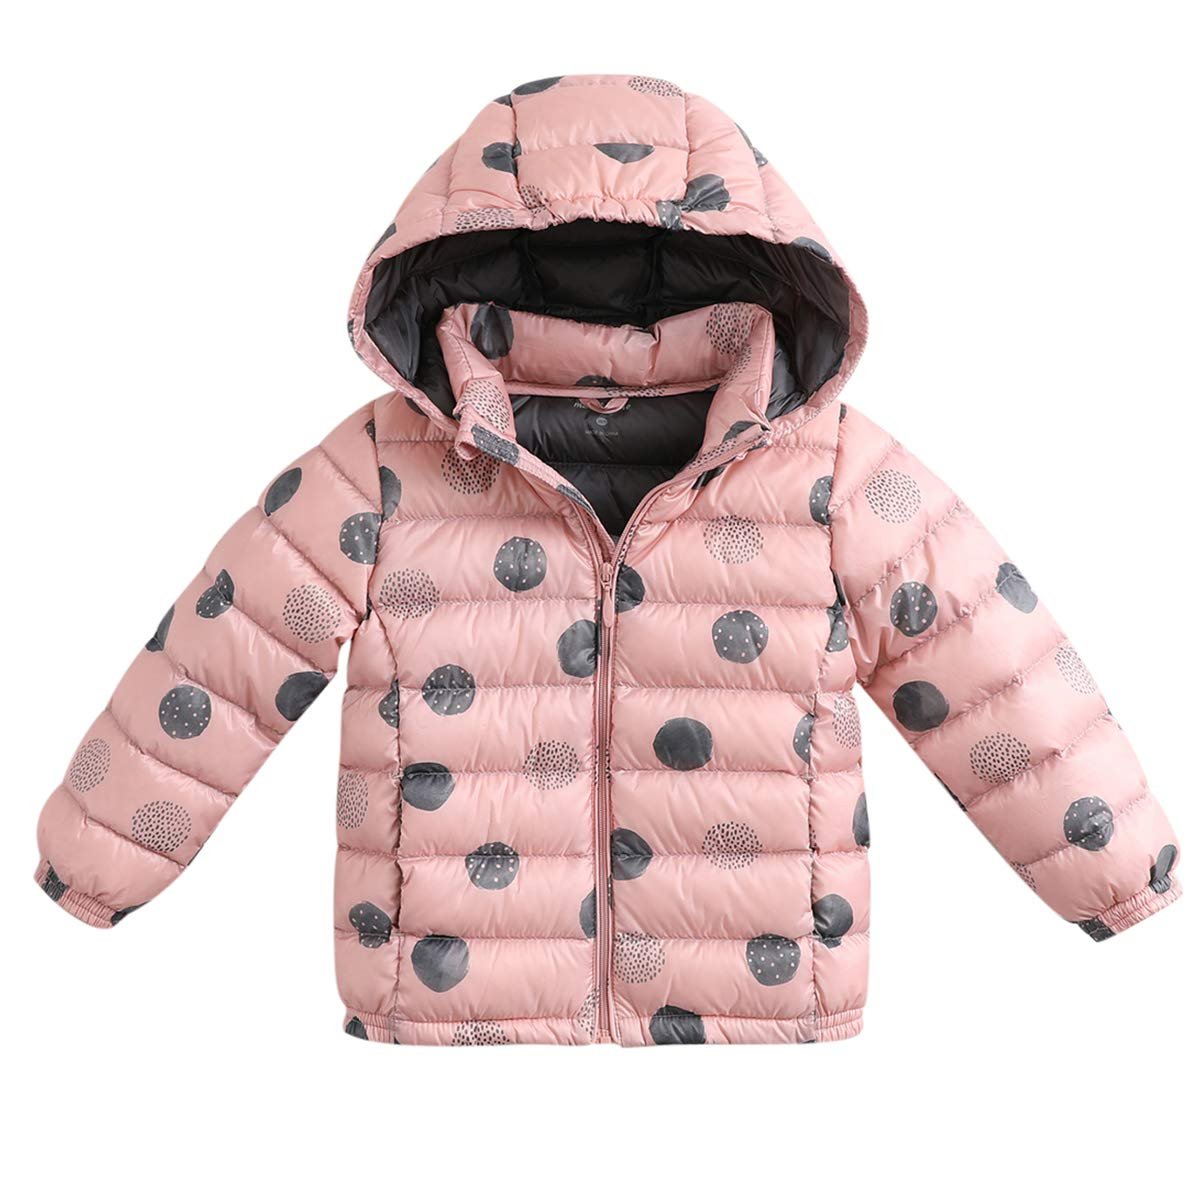 marc janie Girls Lightweight Packable Hooded Down Puffer Jacket